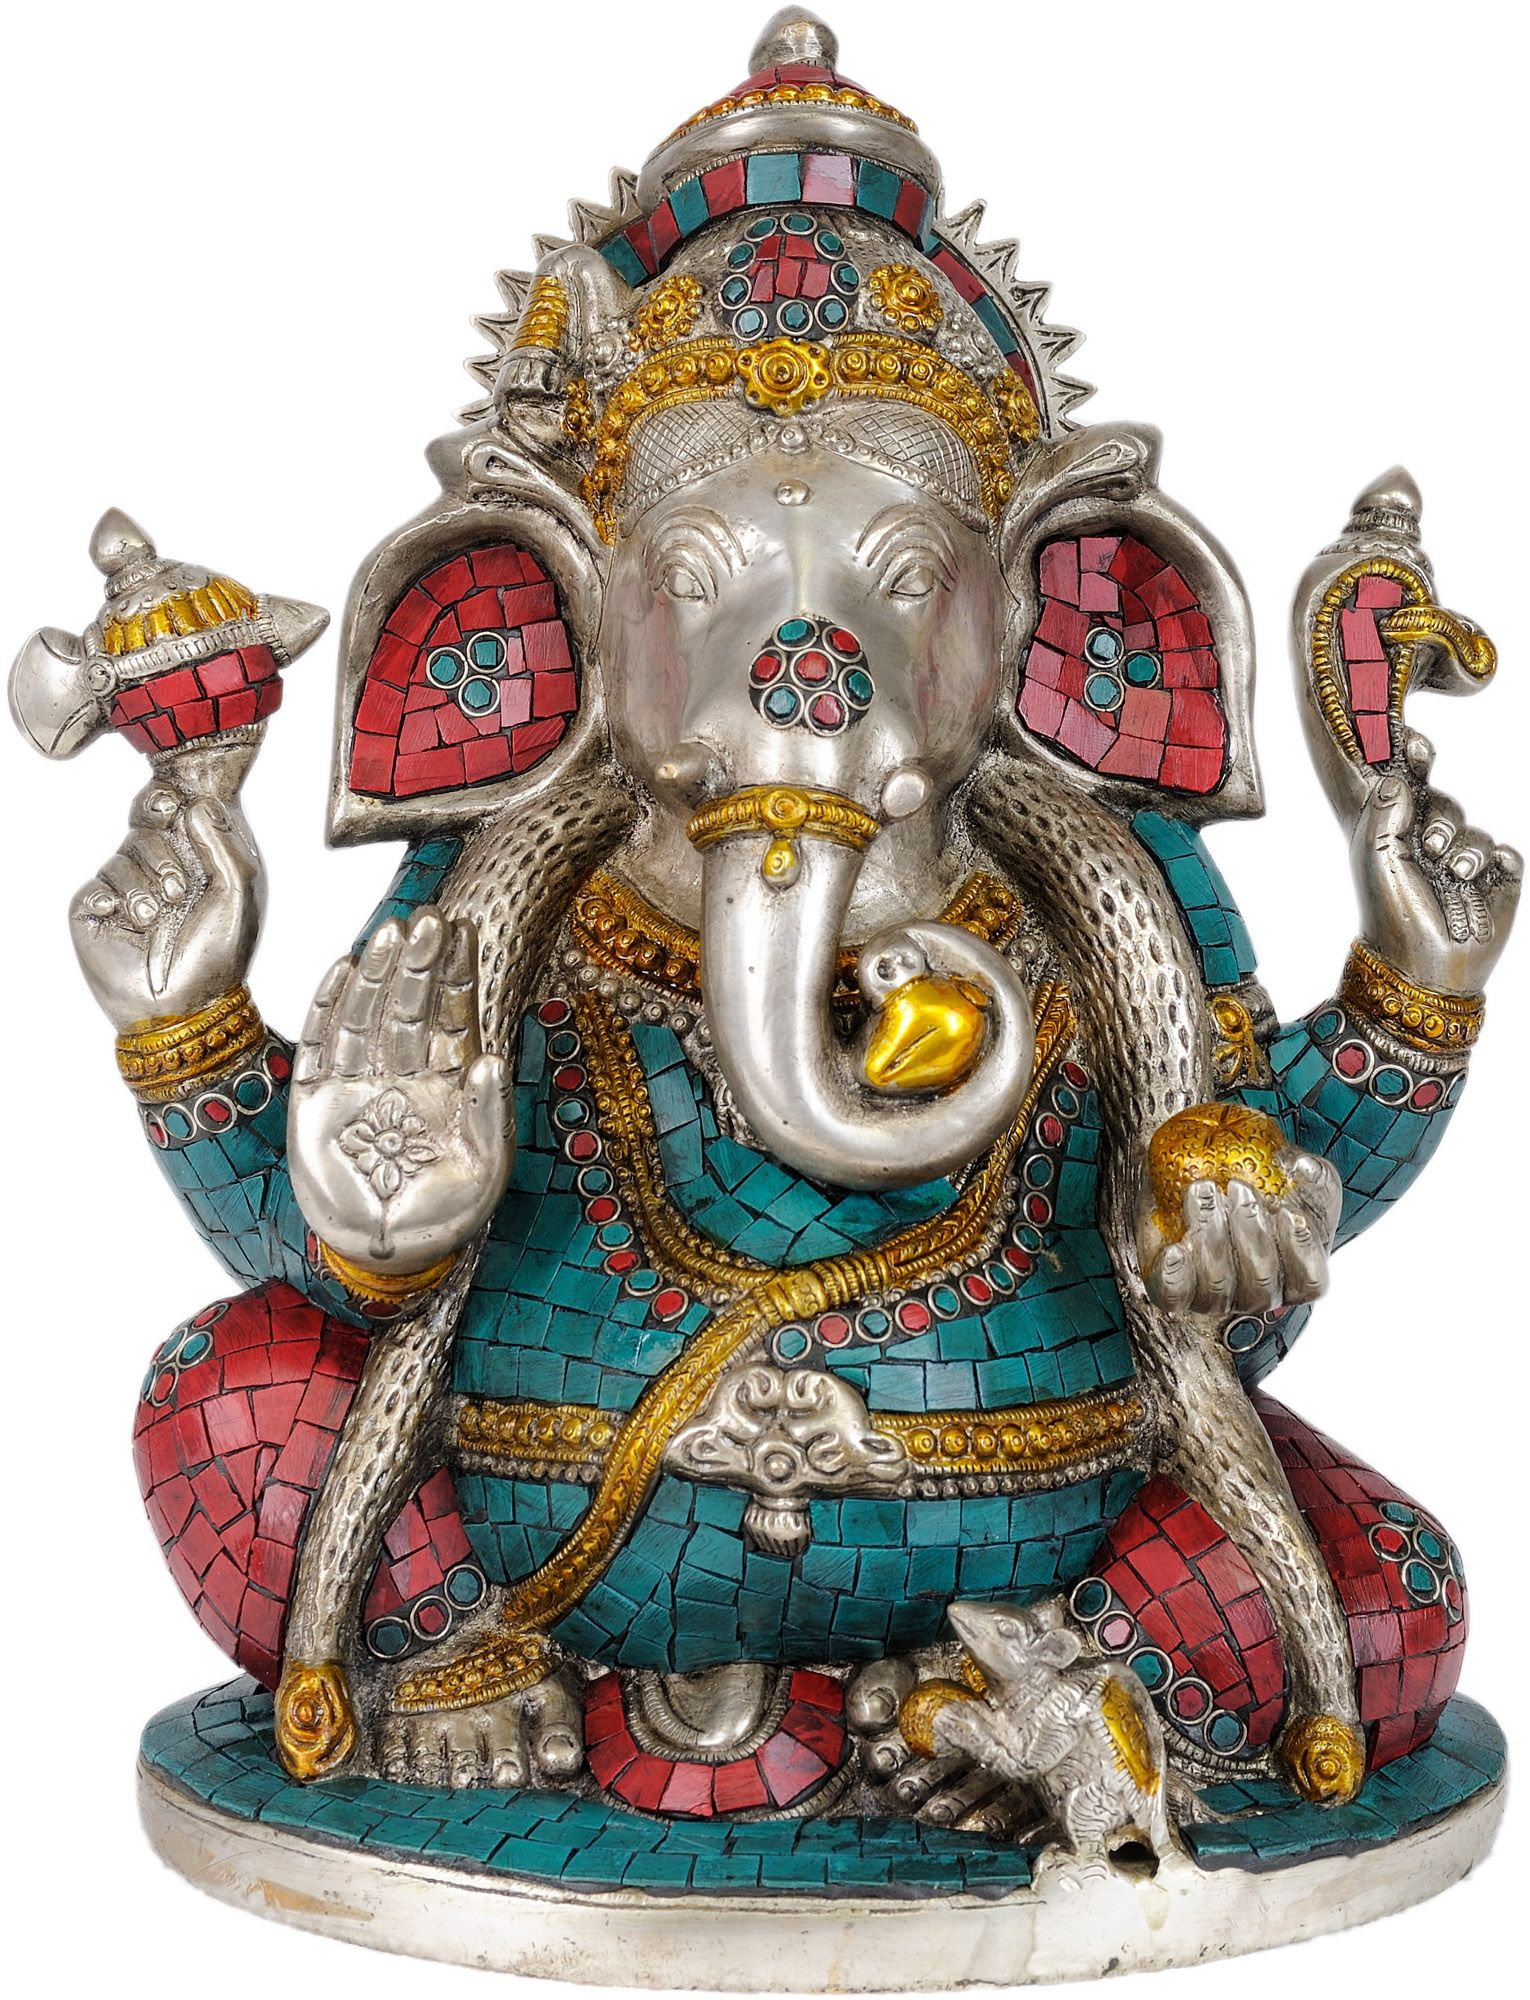 Lambodara Ganesha in Silver Hue with Coral and Turquoise Color Inlay |  Brass statues, Ganesha, Turquoise color